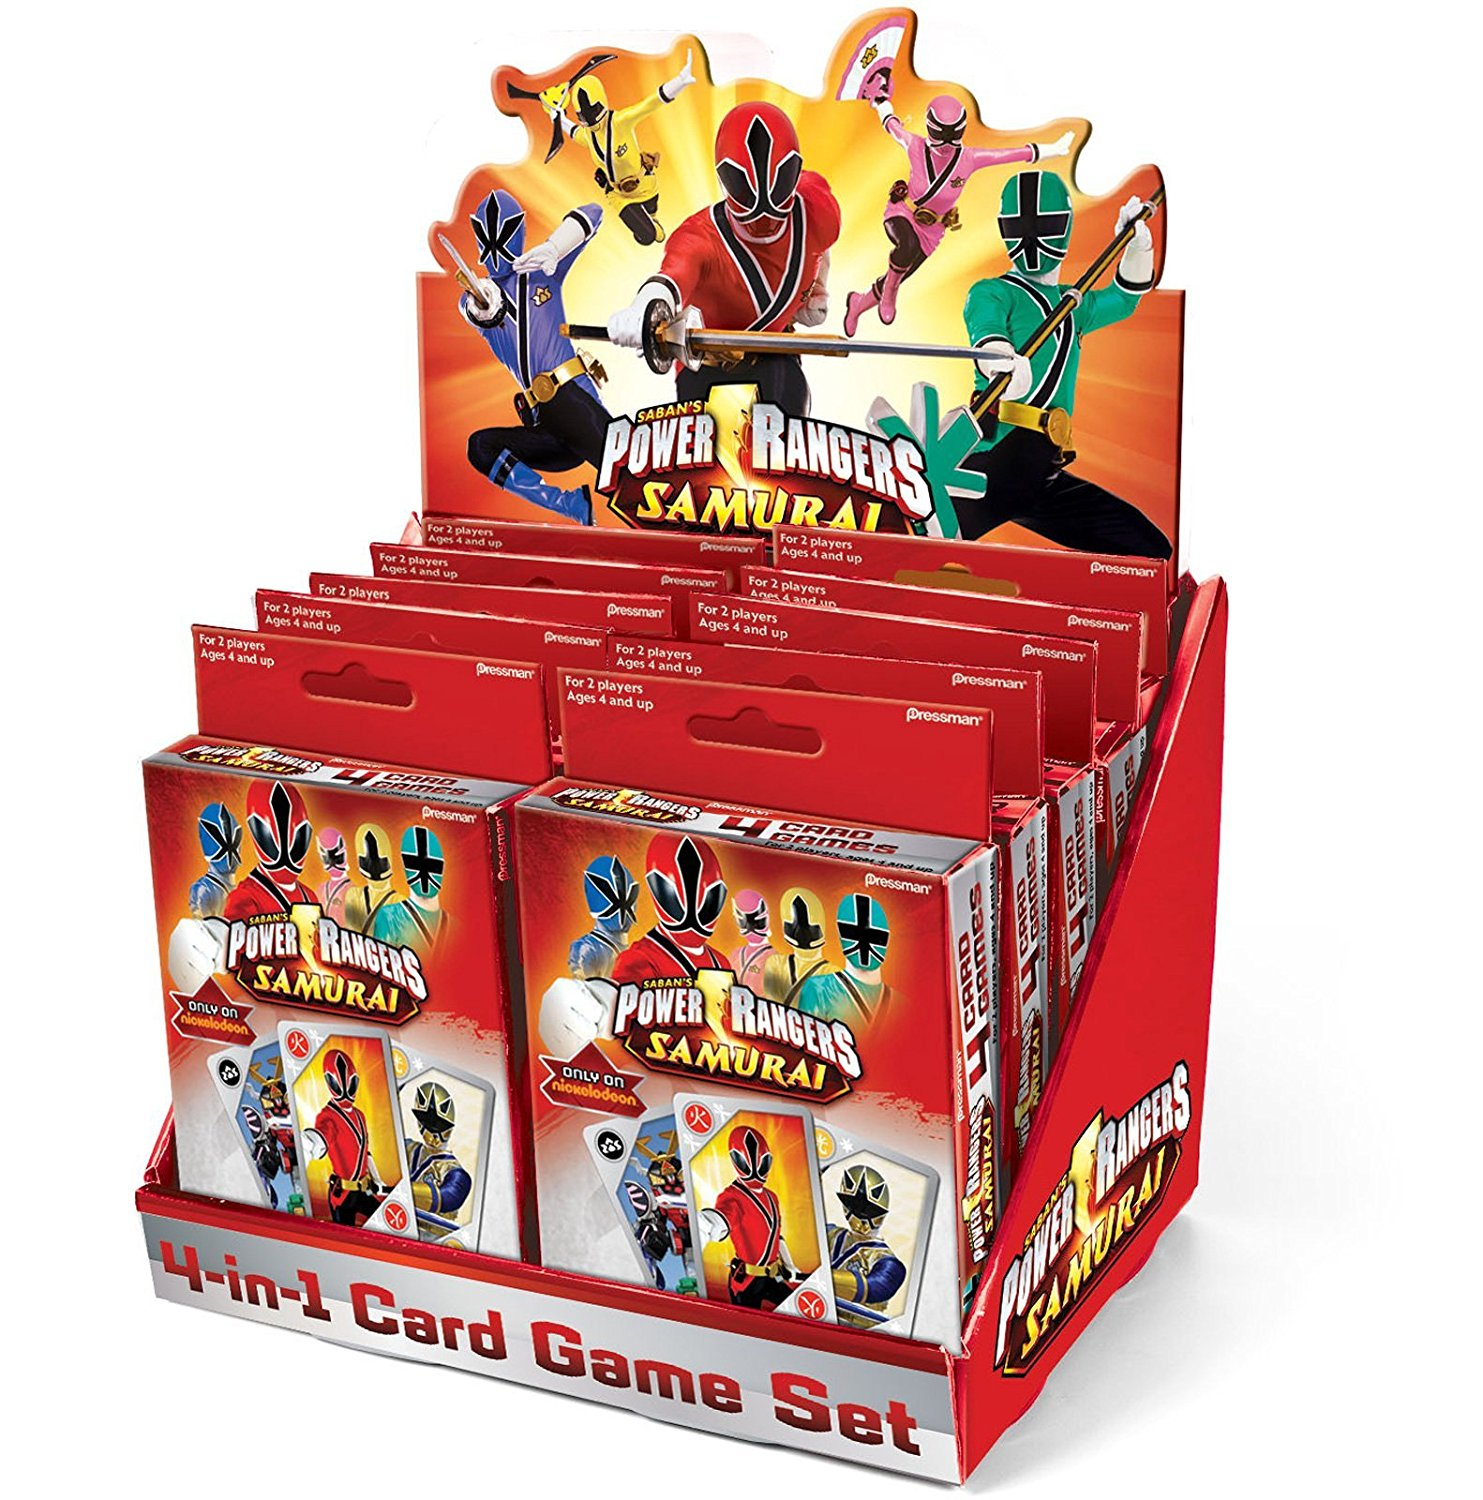 Power Rangers Samurai 4 in 1 Card Game (Red) Party Accessory